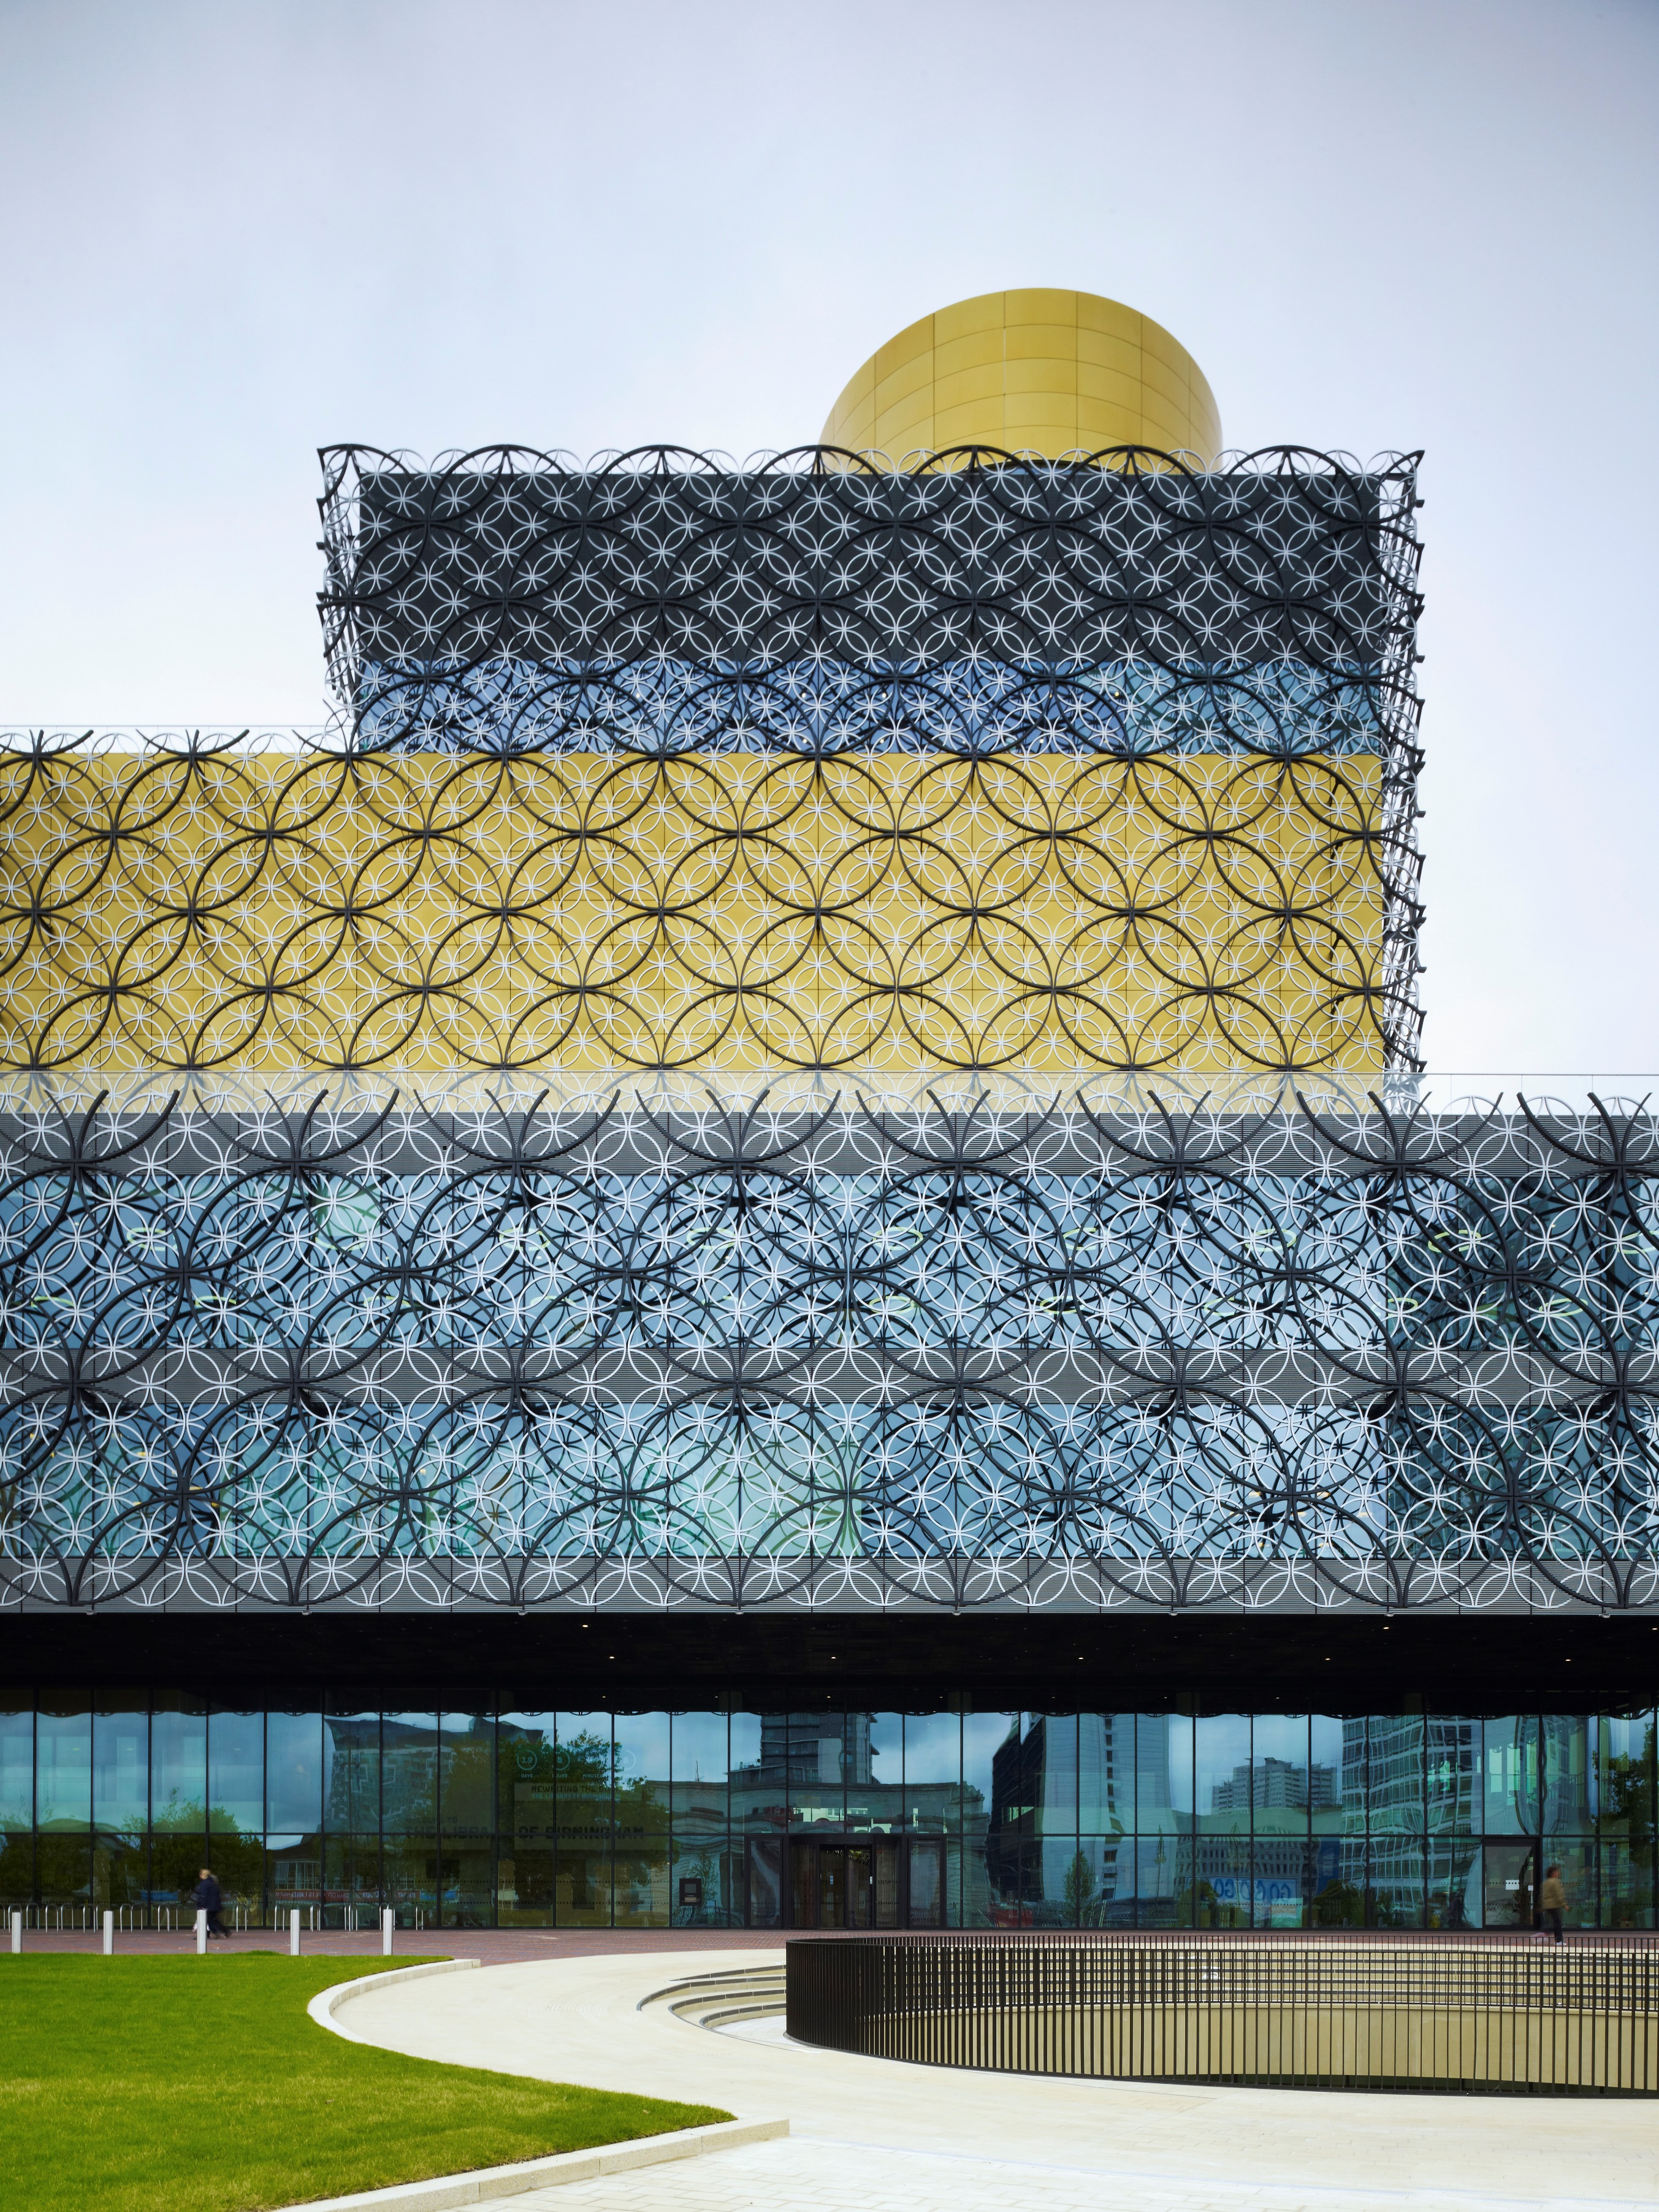 Library of Birmingham by Christian Richters